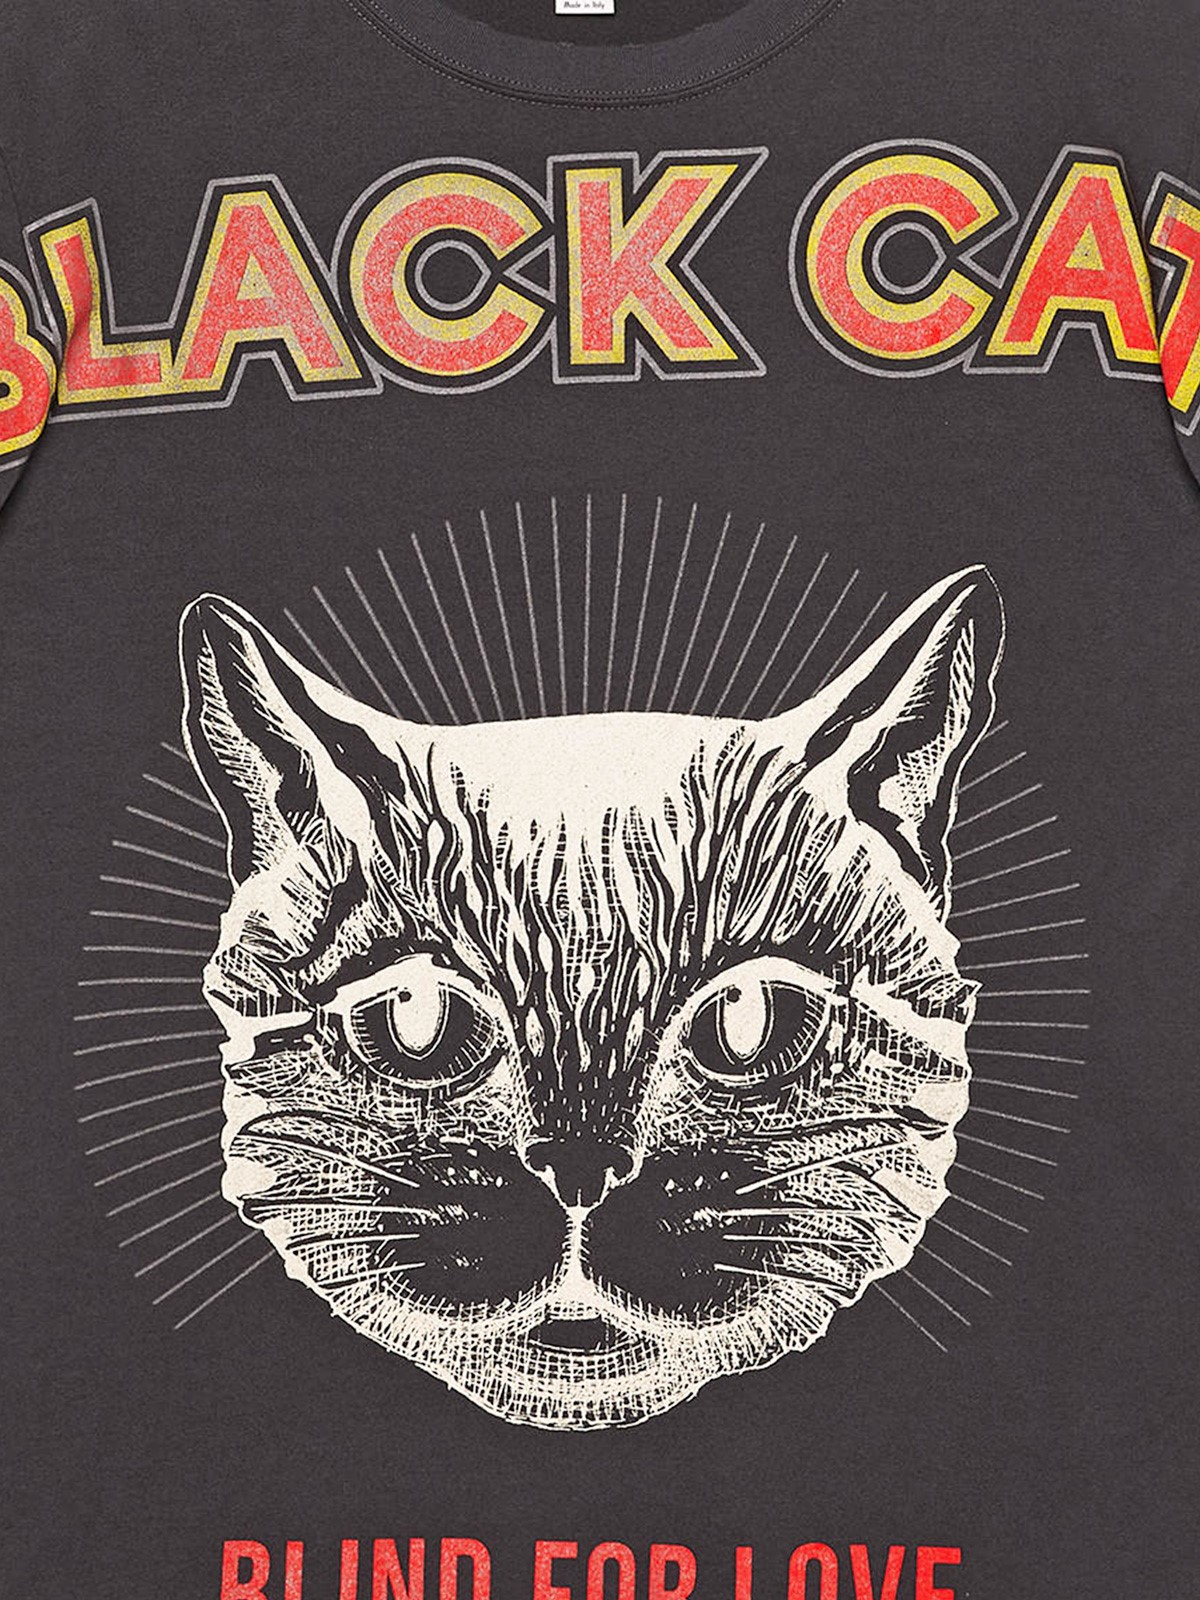 4542eefd8 gucci BLACK CAT PRINTED T-SHIRT available on montiboutique.com - 21508